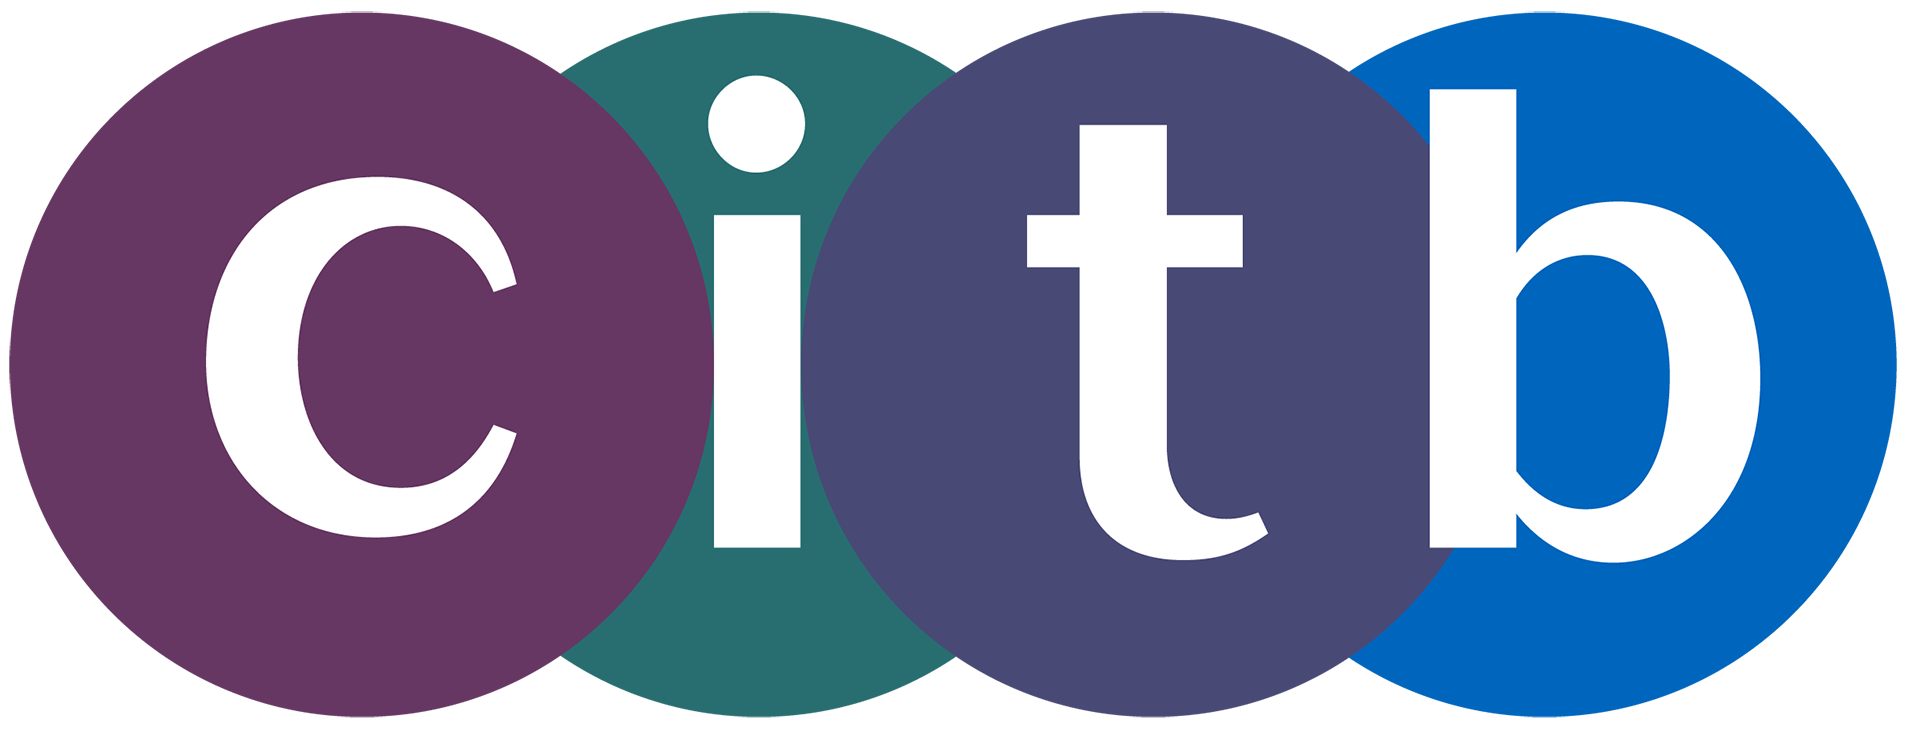 https://www.citb.co.uk/